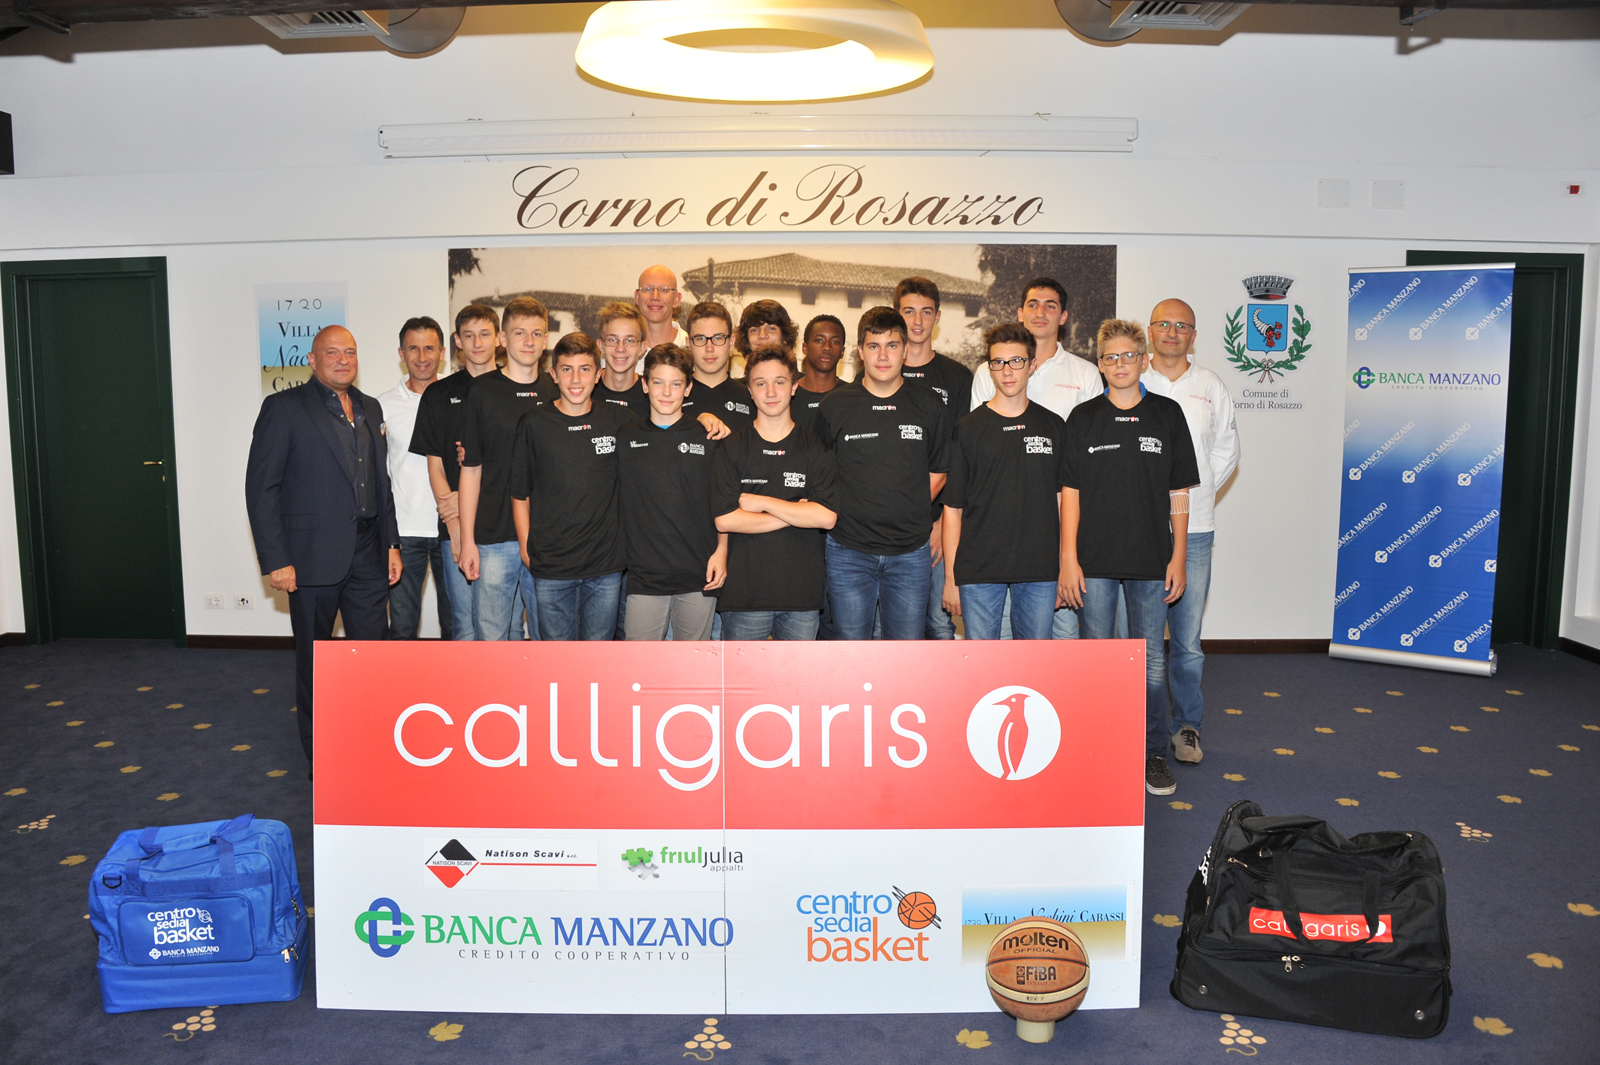 Calligaris Under 15 Stagione 2015-2016